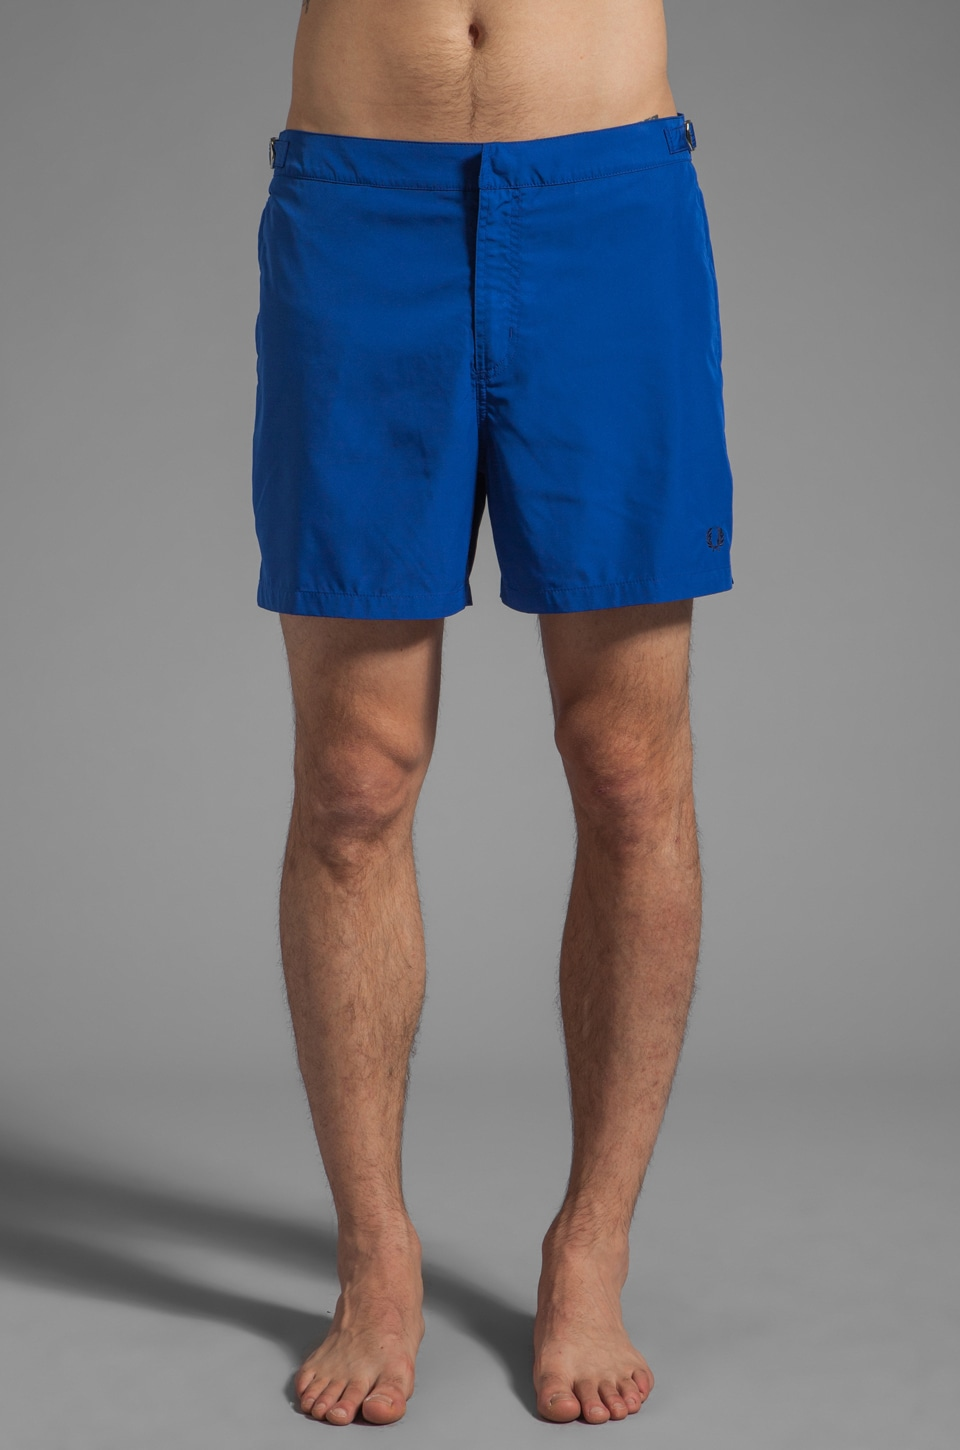 Fred Perry Side Adjuster Short in Regal Blue